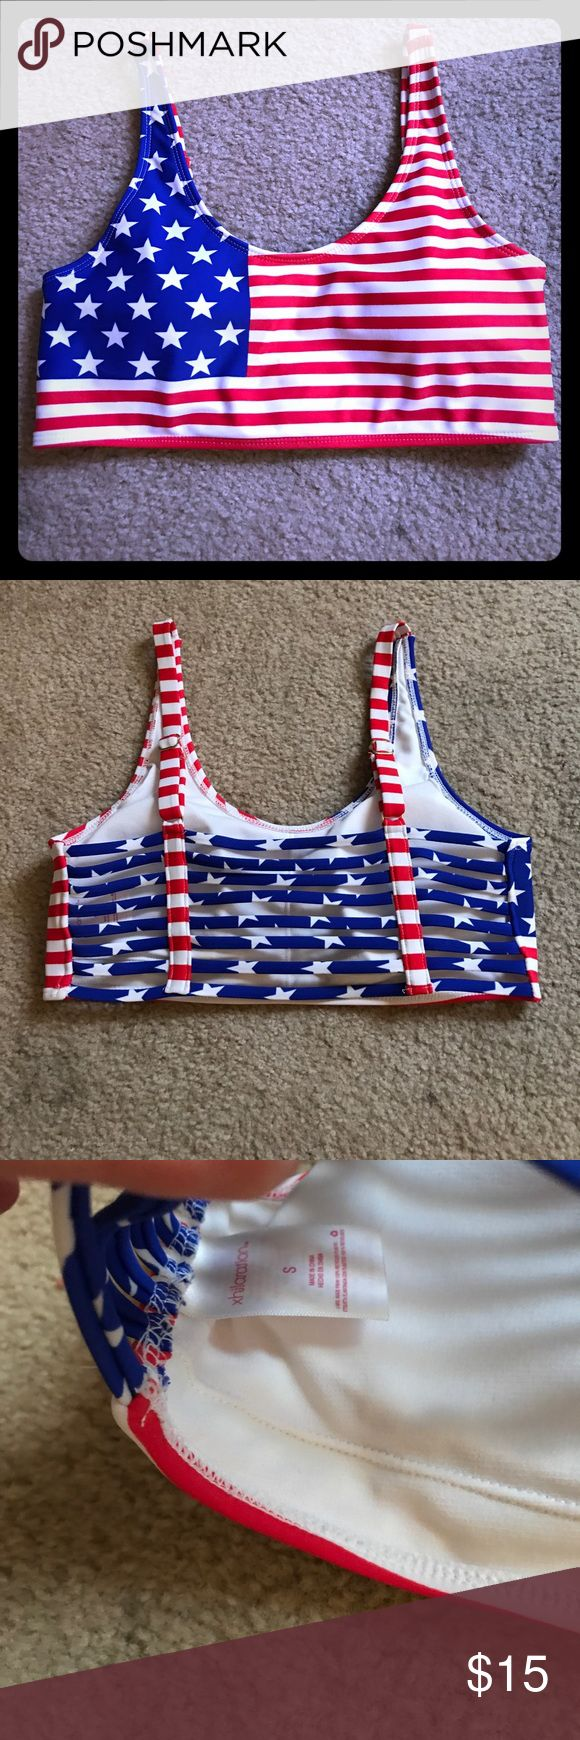 American Flag Patriotic Bikini Top Super cute American Flag patriotic bikini top. Xhilaration size small. Has removable pads. Awesome 8 strap back with adjustable shoulder straps. Perfect for literally any time of the year. EUC! USA 🇺🇸🇺🇸🇺🇸 Xhilaration Swim Bikinis